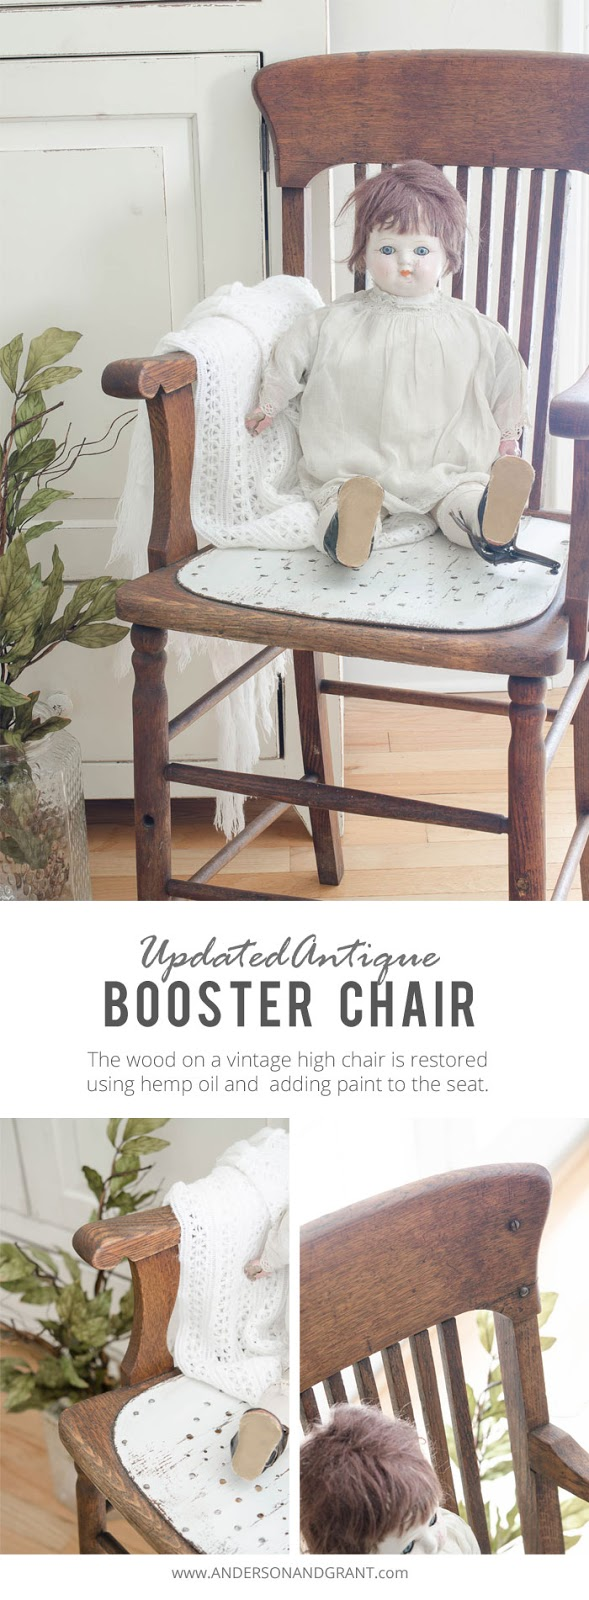 Painted wood high chair - This Post May Contain Affiliate Links That Means That If You Purchase A Product I Ve Recommended It Won T Cost You Any More But I May Receive A Small